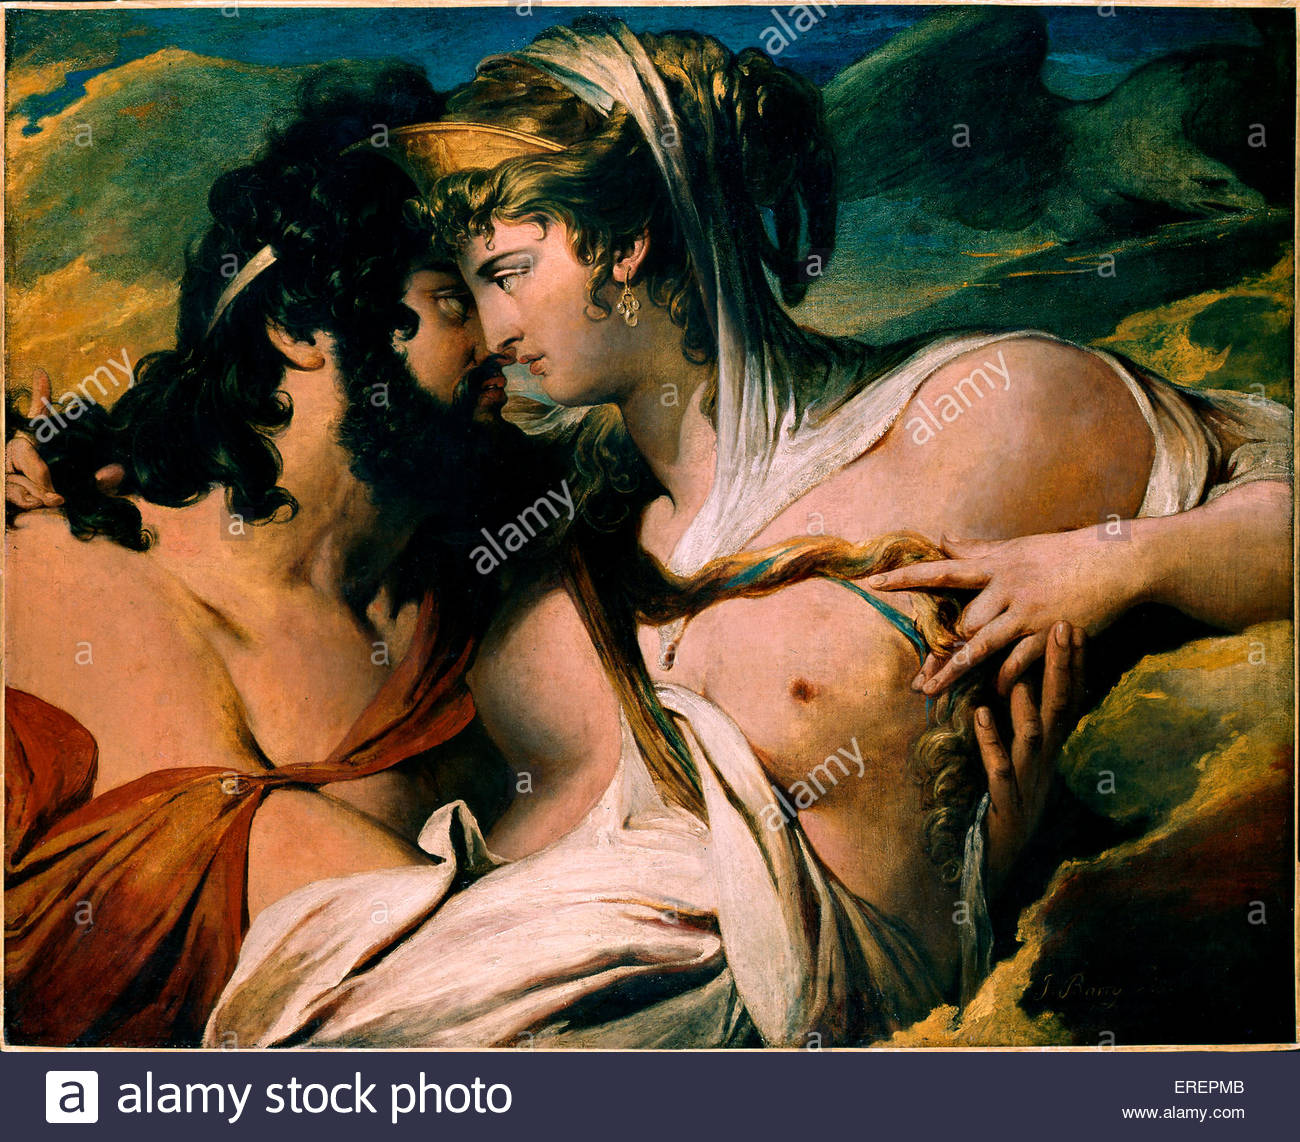 Juno and Jupiter on Mount Ida by James Barry, 1790-1799. Oil on canvas. JB: Irish painter, 11 October 1741 – 22 - Stock Image